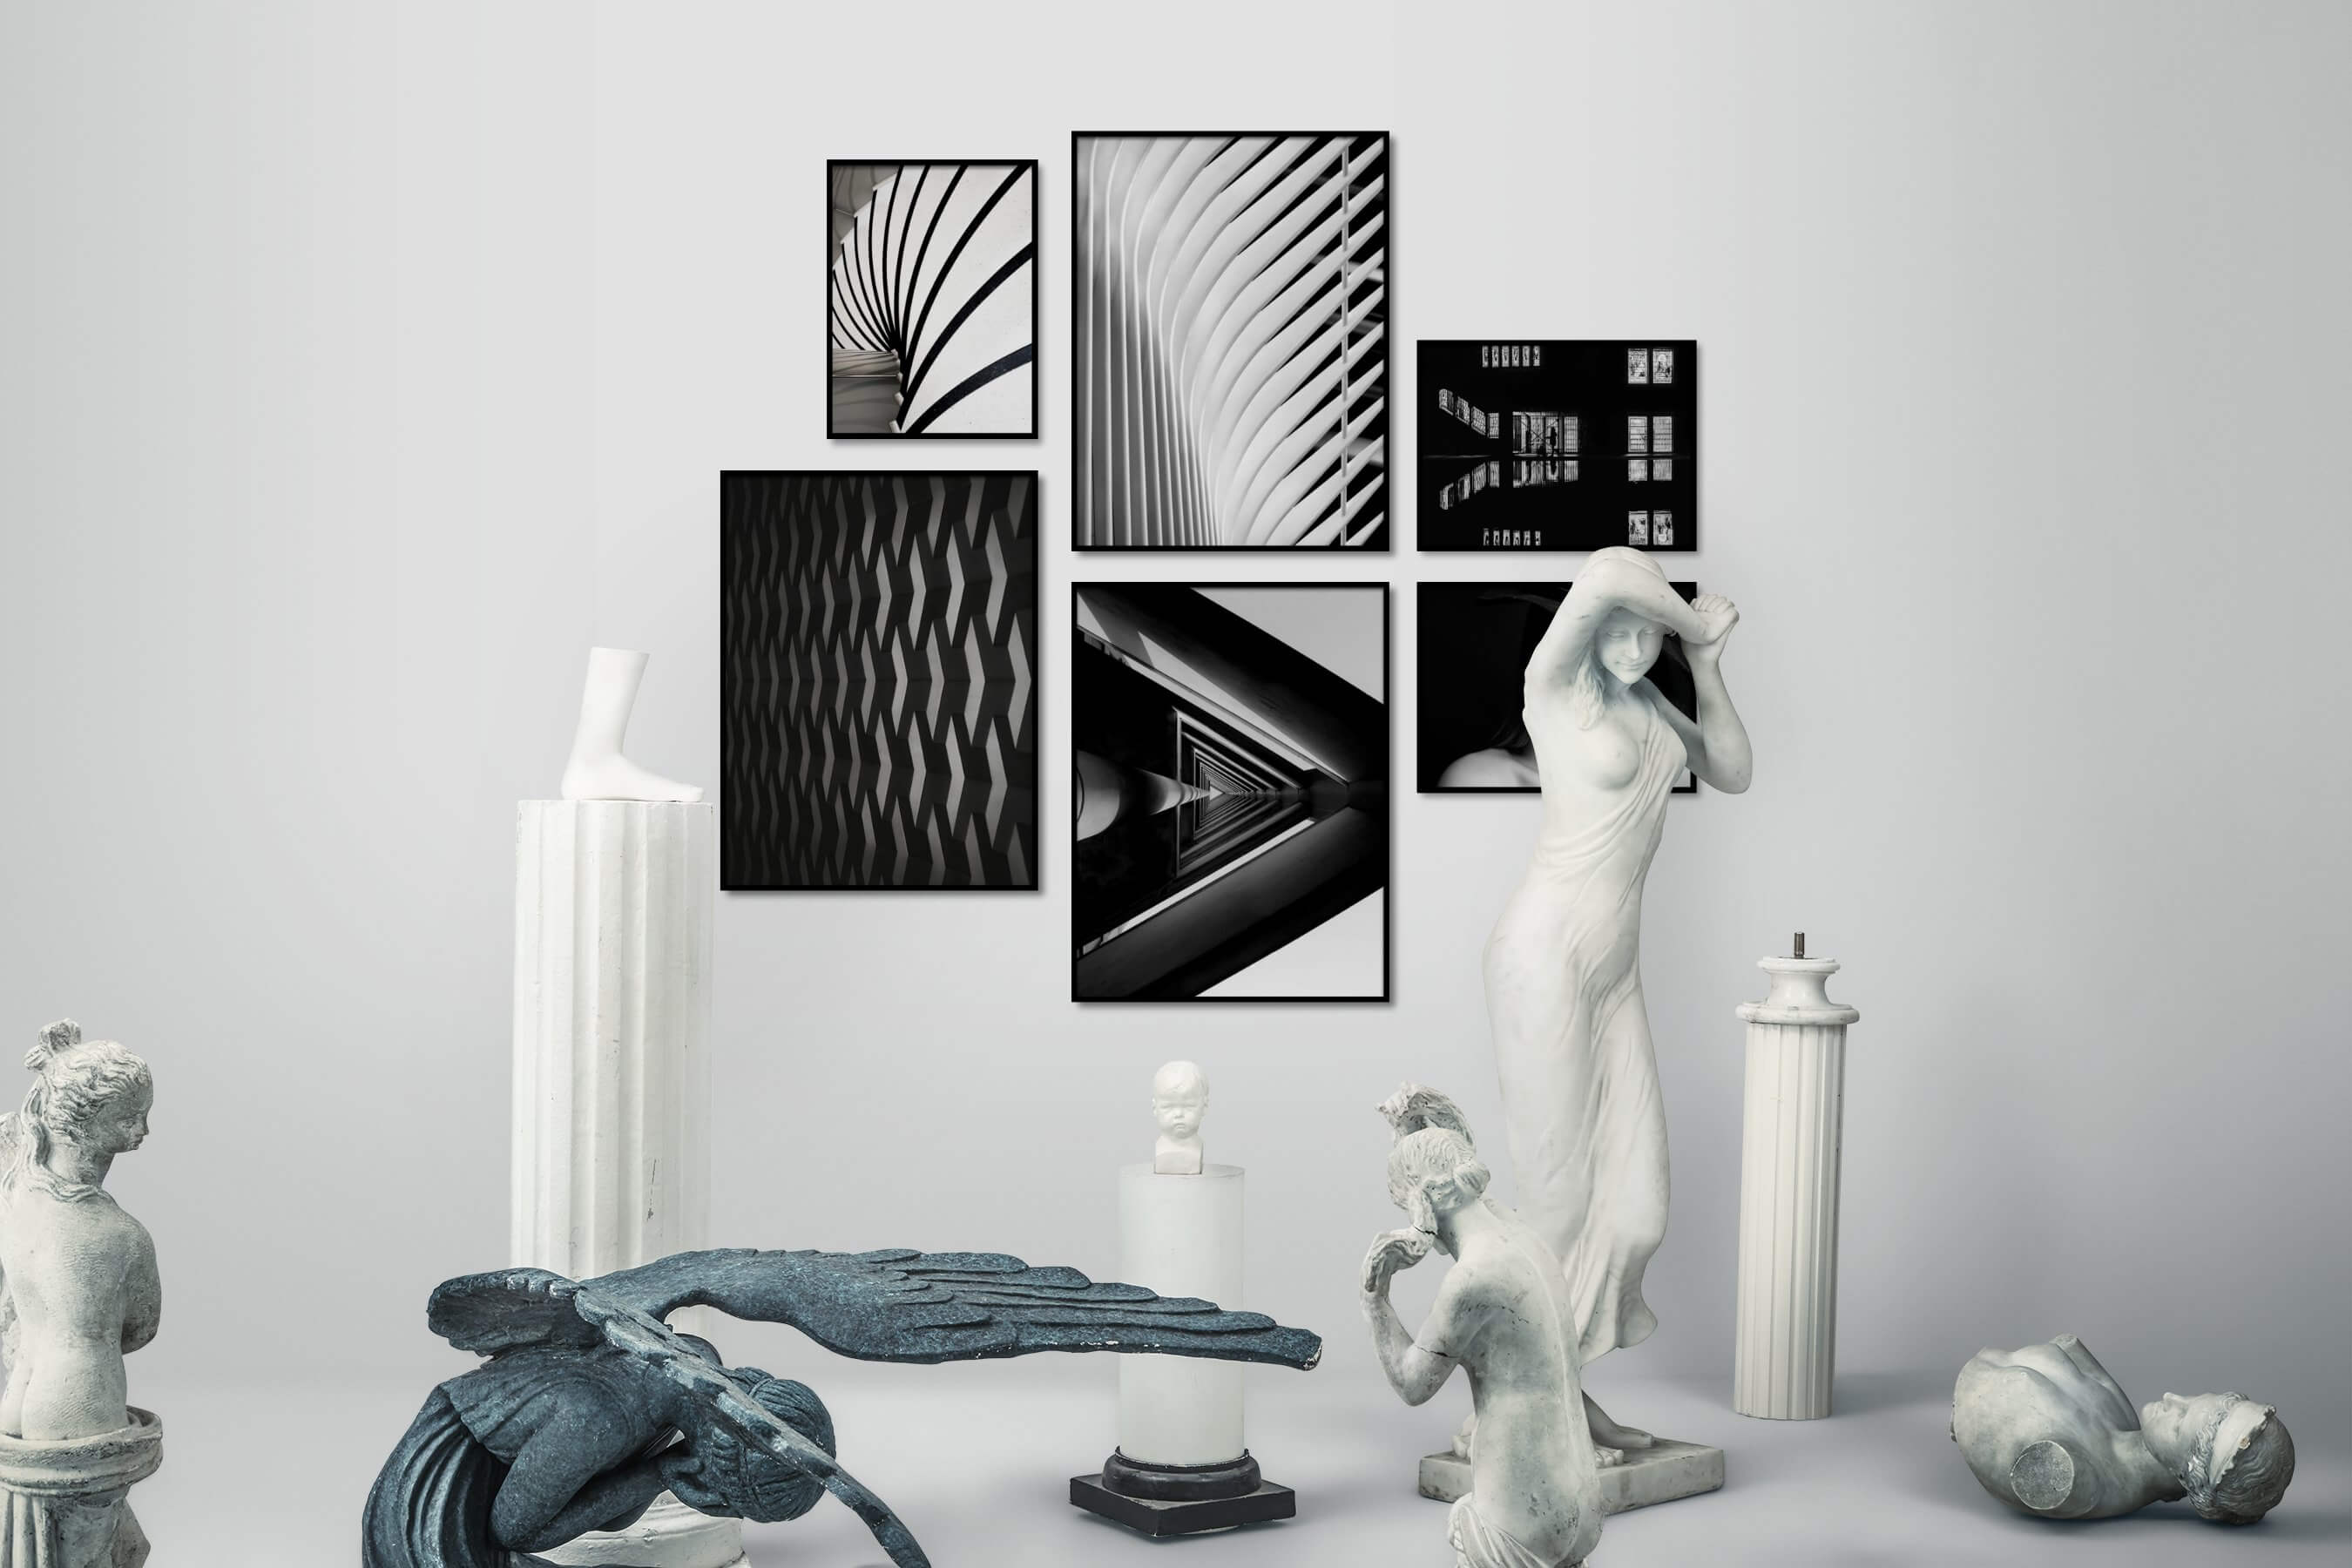 Gallery wall idea with six framed pictures arranged on a wall depicting Black & White, For the Moderate, For the Maximalist, Dark Tones, Fashion & Beauty, and For the Minimalist